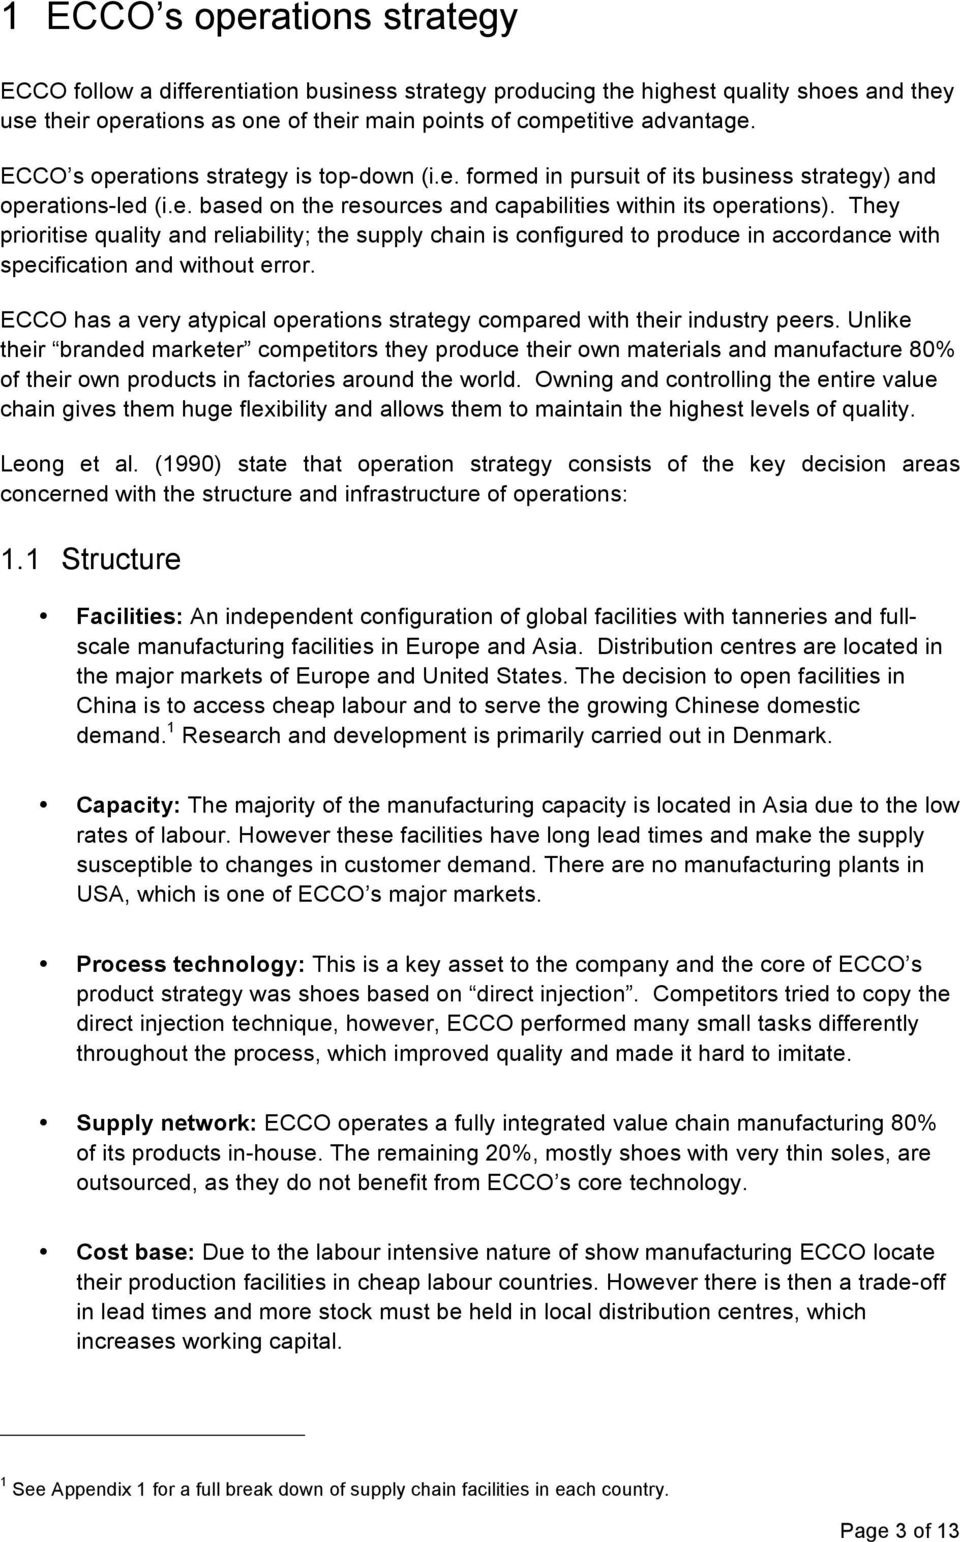 ecco supply chain management Free essay: 1) describe the competitive environment of ecco and determine  how  ecco maintained a fully vertically integrated value chain situated in  various  to date, ecco has done a good job of managing the tradeoffs, but  they  derek mitchell ecco supply chain & operations analysis policy.